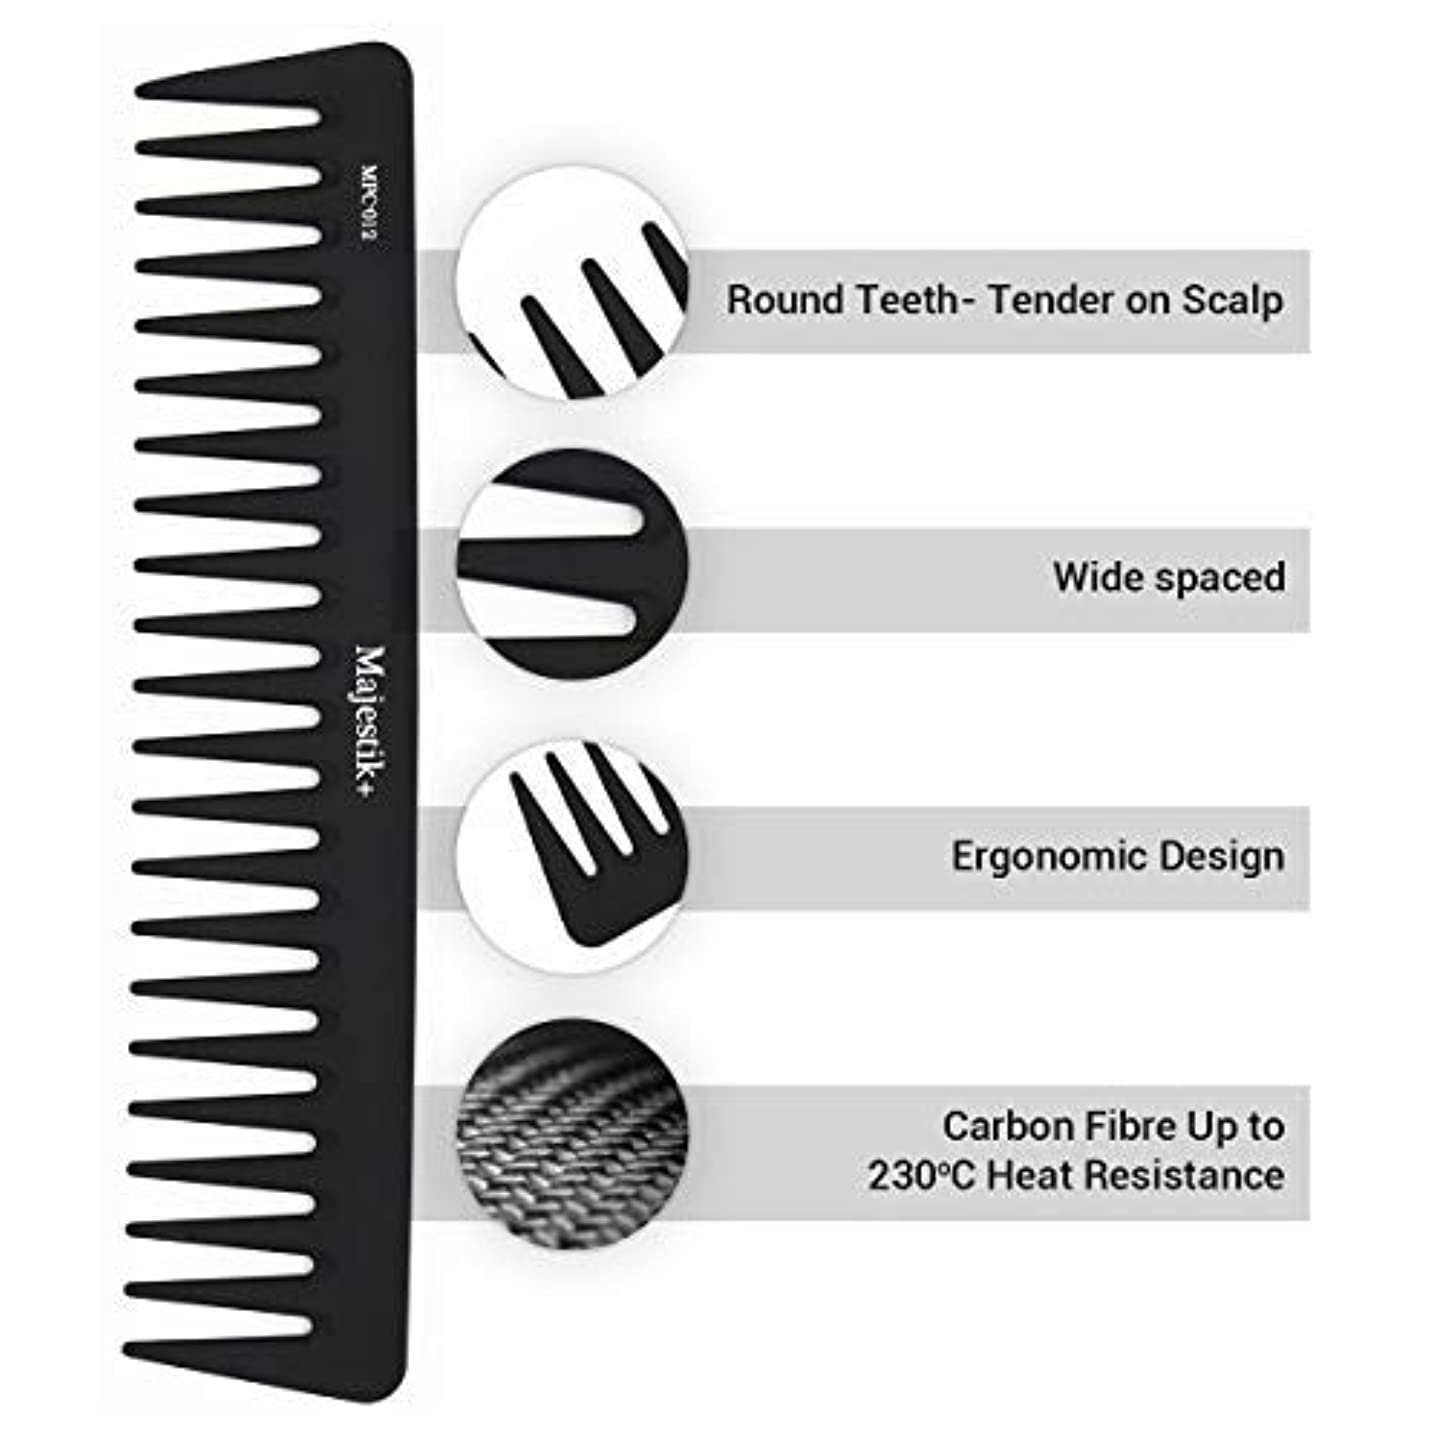 冷える青コンパスWide Tooth Comb- a Professional Carbon Fibre Hair Comb by Majestik+, Anti-Static, Strength & Durability, in Black...